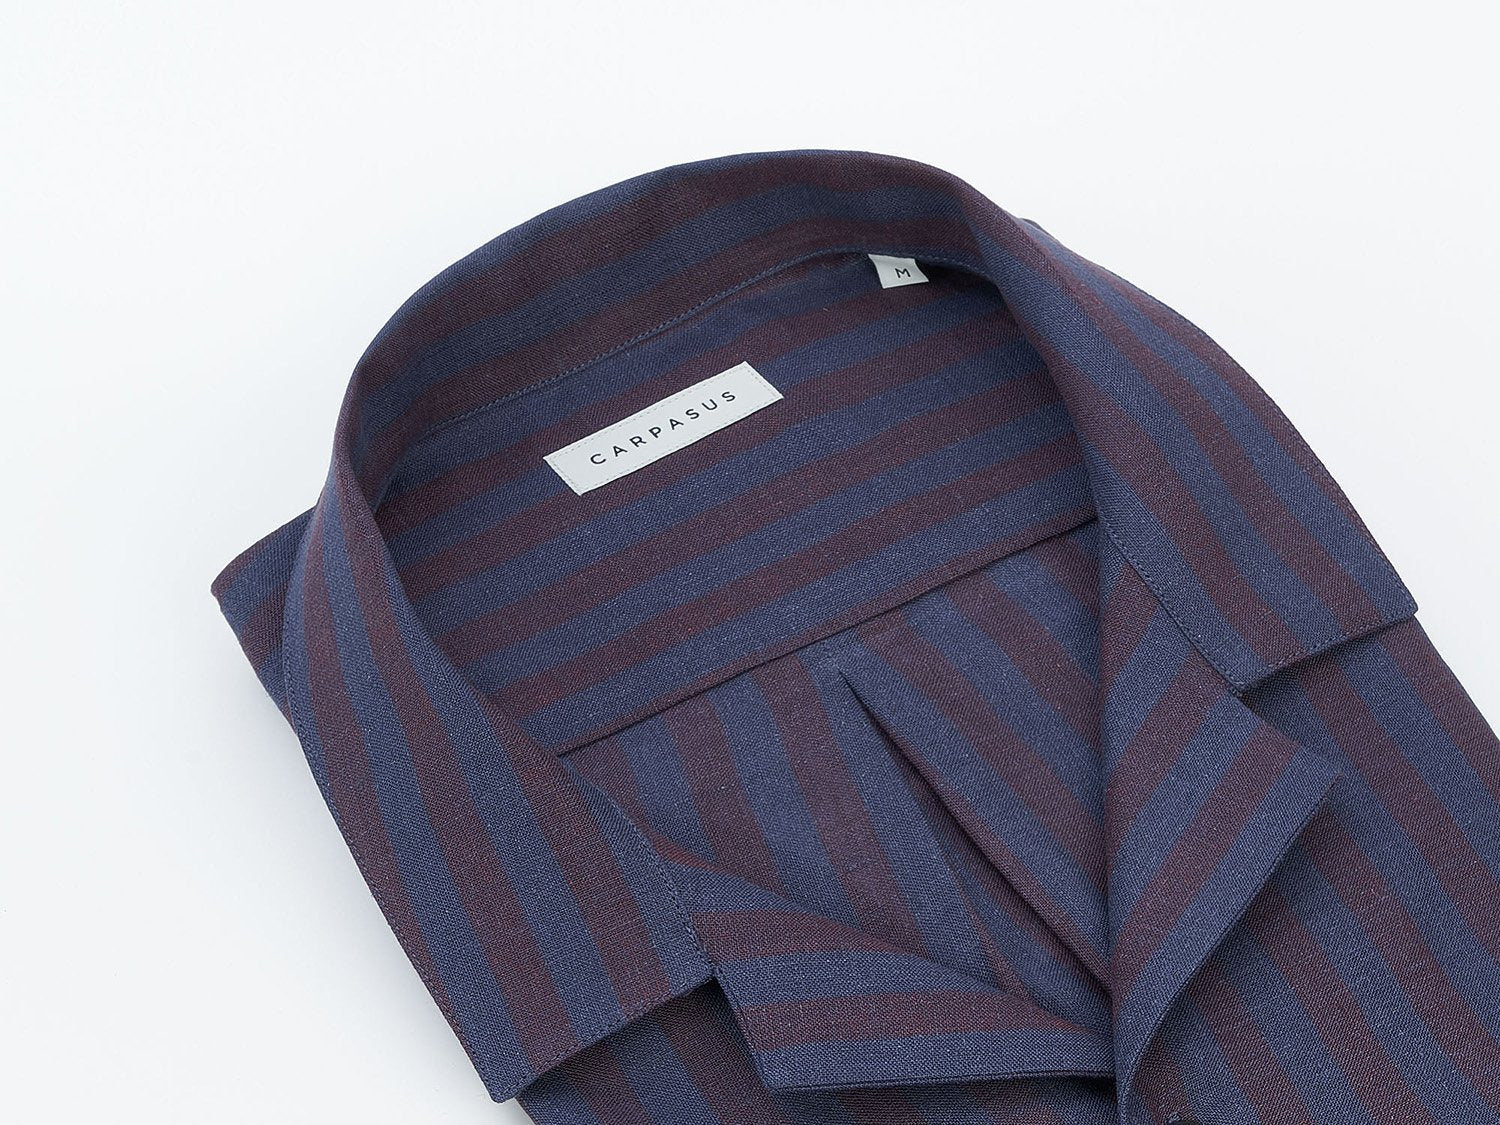 carpasus sustainable organic linen shirt maloja bordeaux. Nachhaltiges Carpasus Hemd Maloja Bordeaux aus Bio Leinen